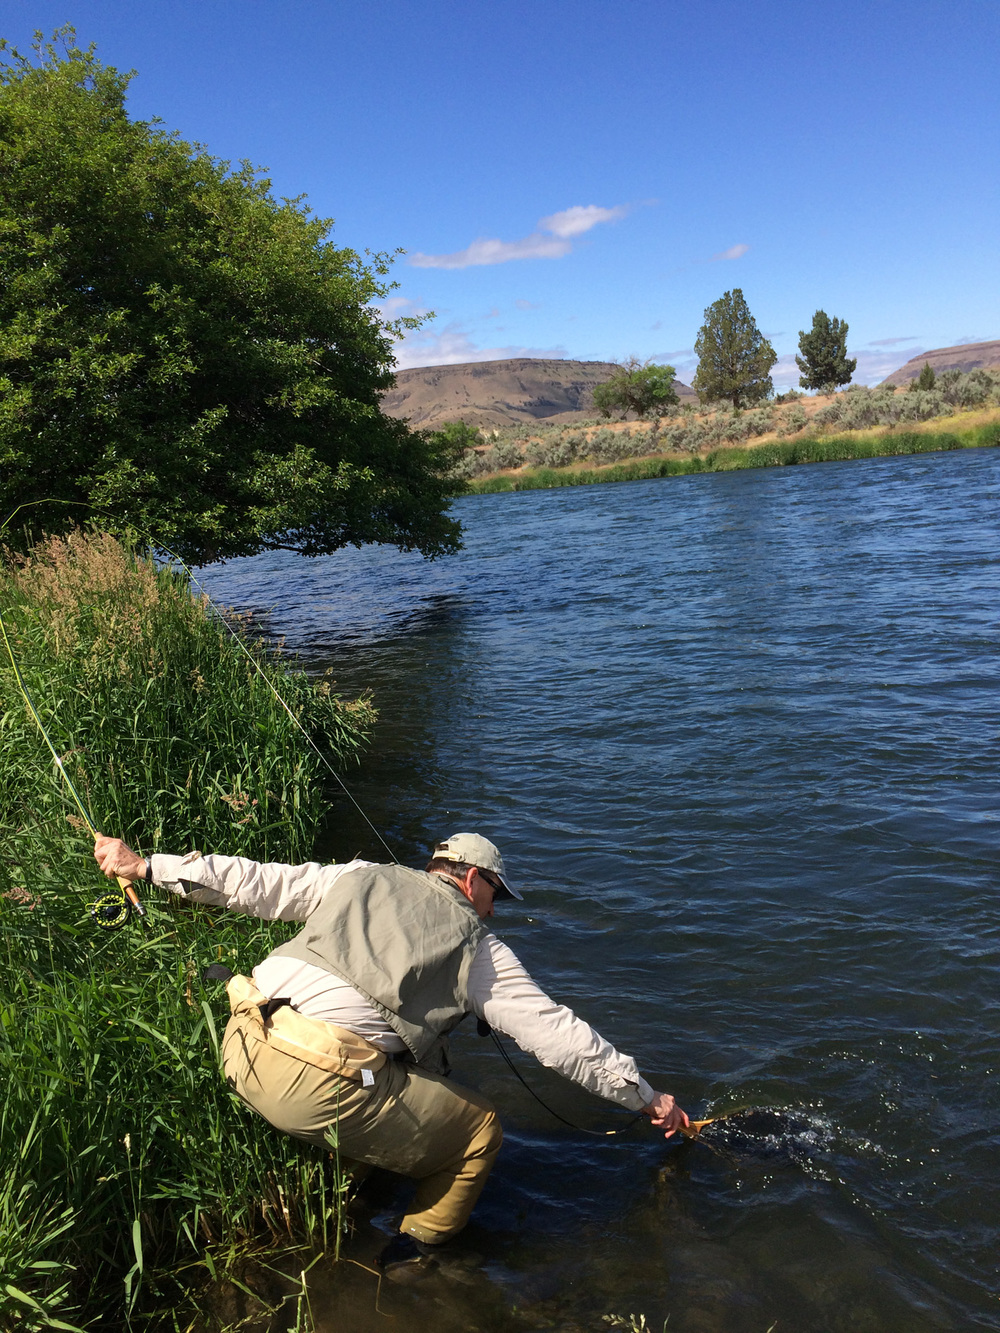 A classic moment in fly fishing when it all comes together.